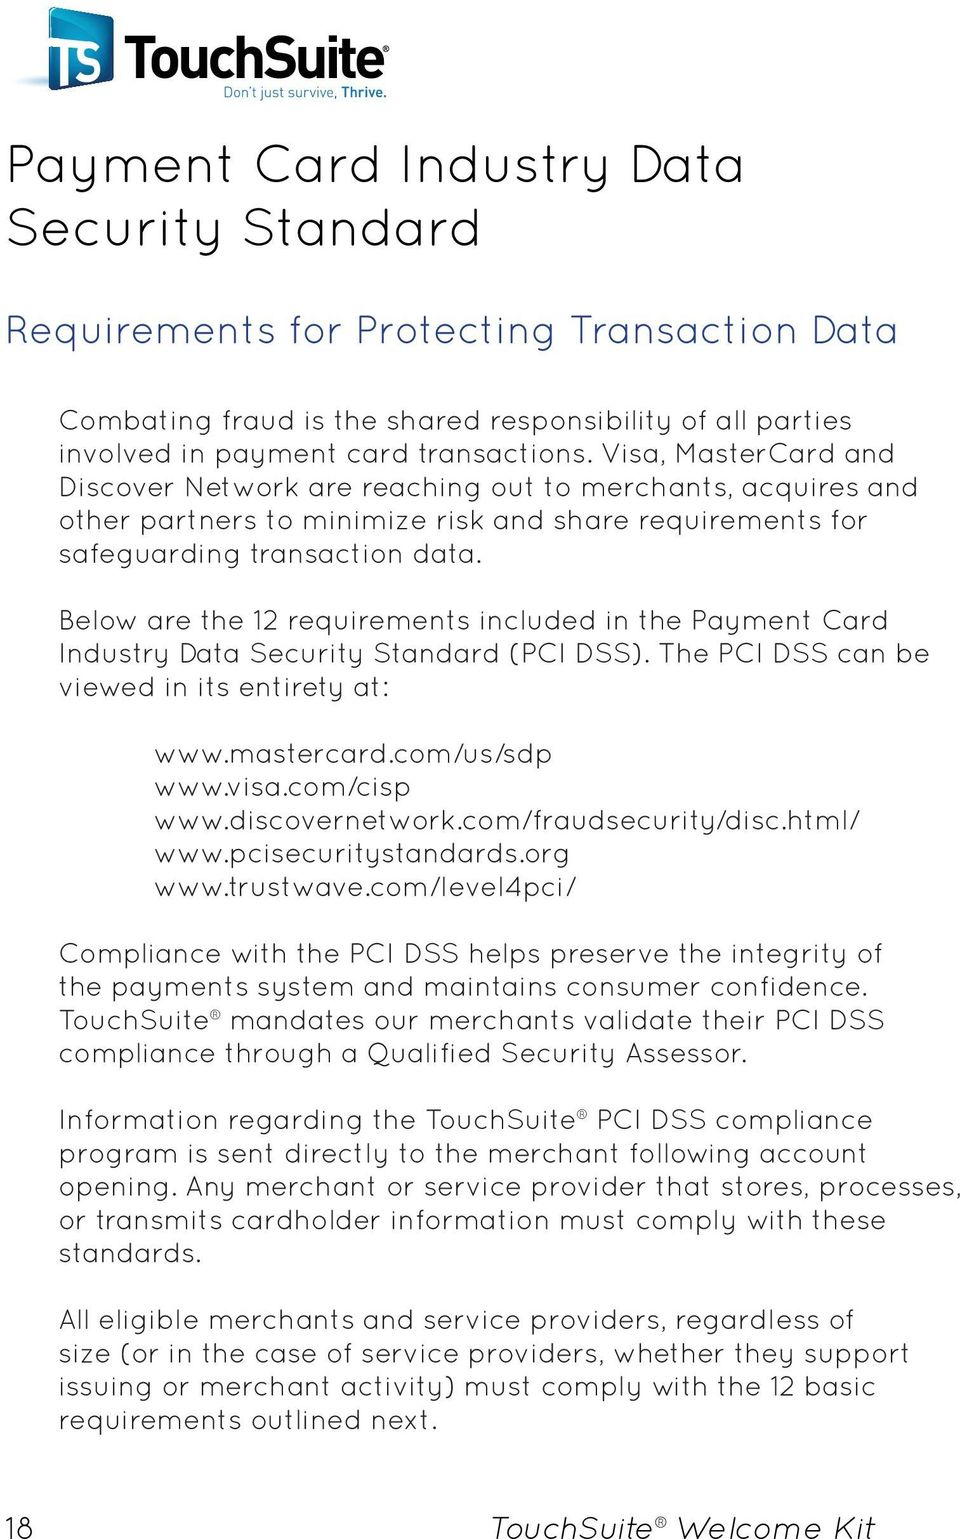 Below are the 12 requirements included in the Payment Card Industry Data Security Standard (PCI DSS). The PCI DSS can be viewed in its entirety at: www.mastercard.com/us/sdp www.visa.com/cisp www.